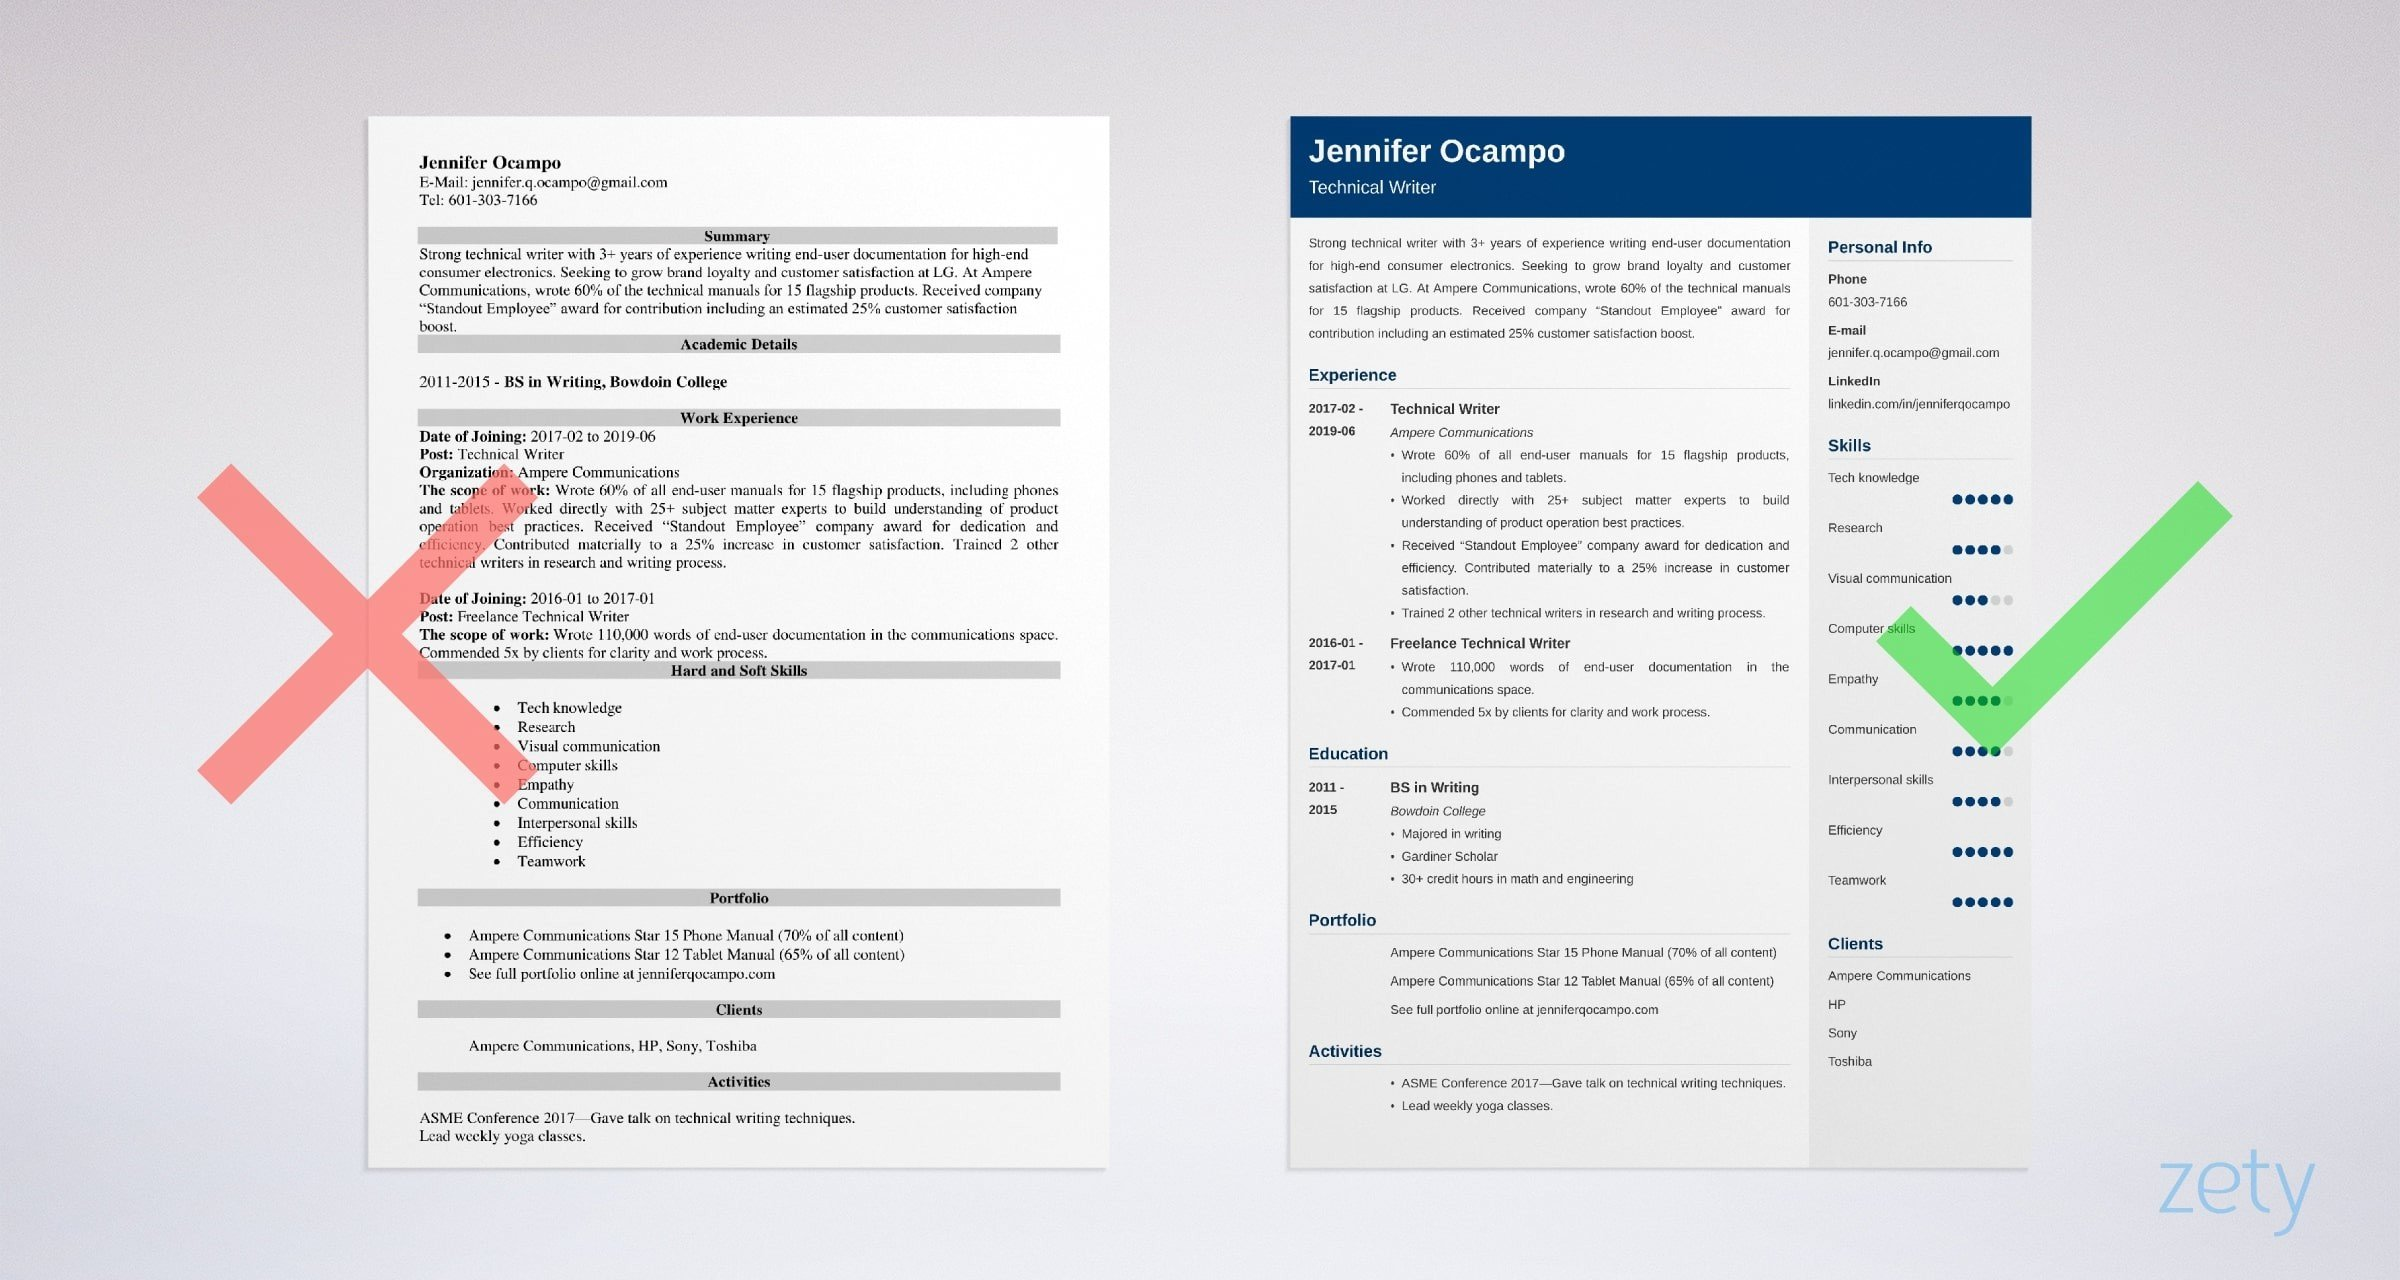 technical writer resume example guide tips samples property consultant sample school Resume Technical Writer Resume Samples